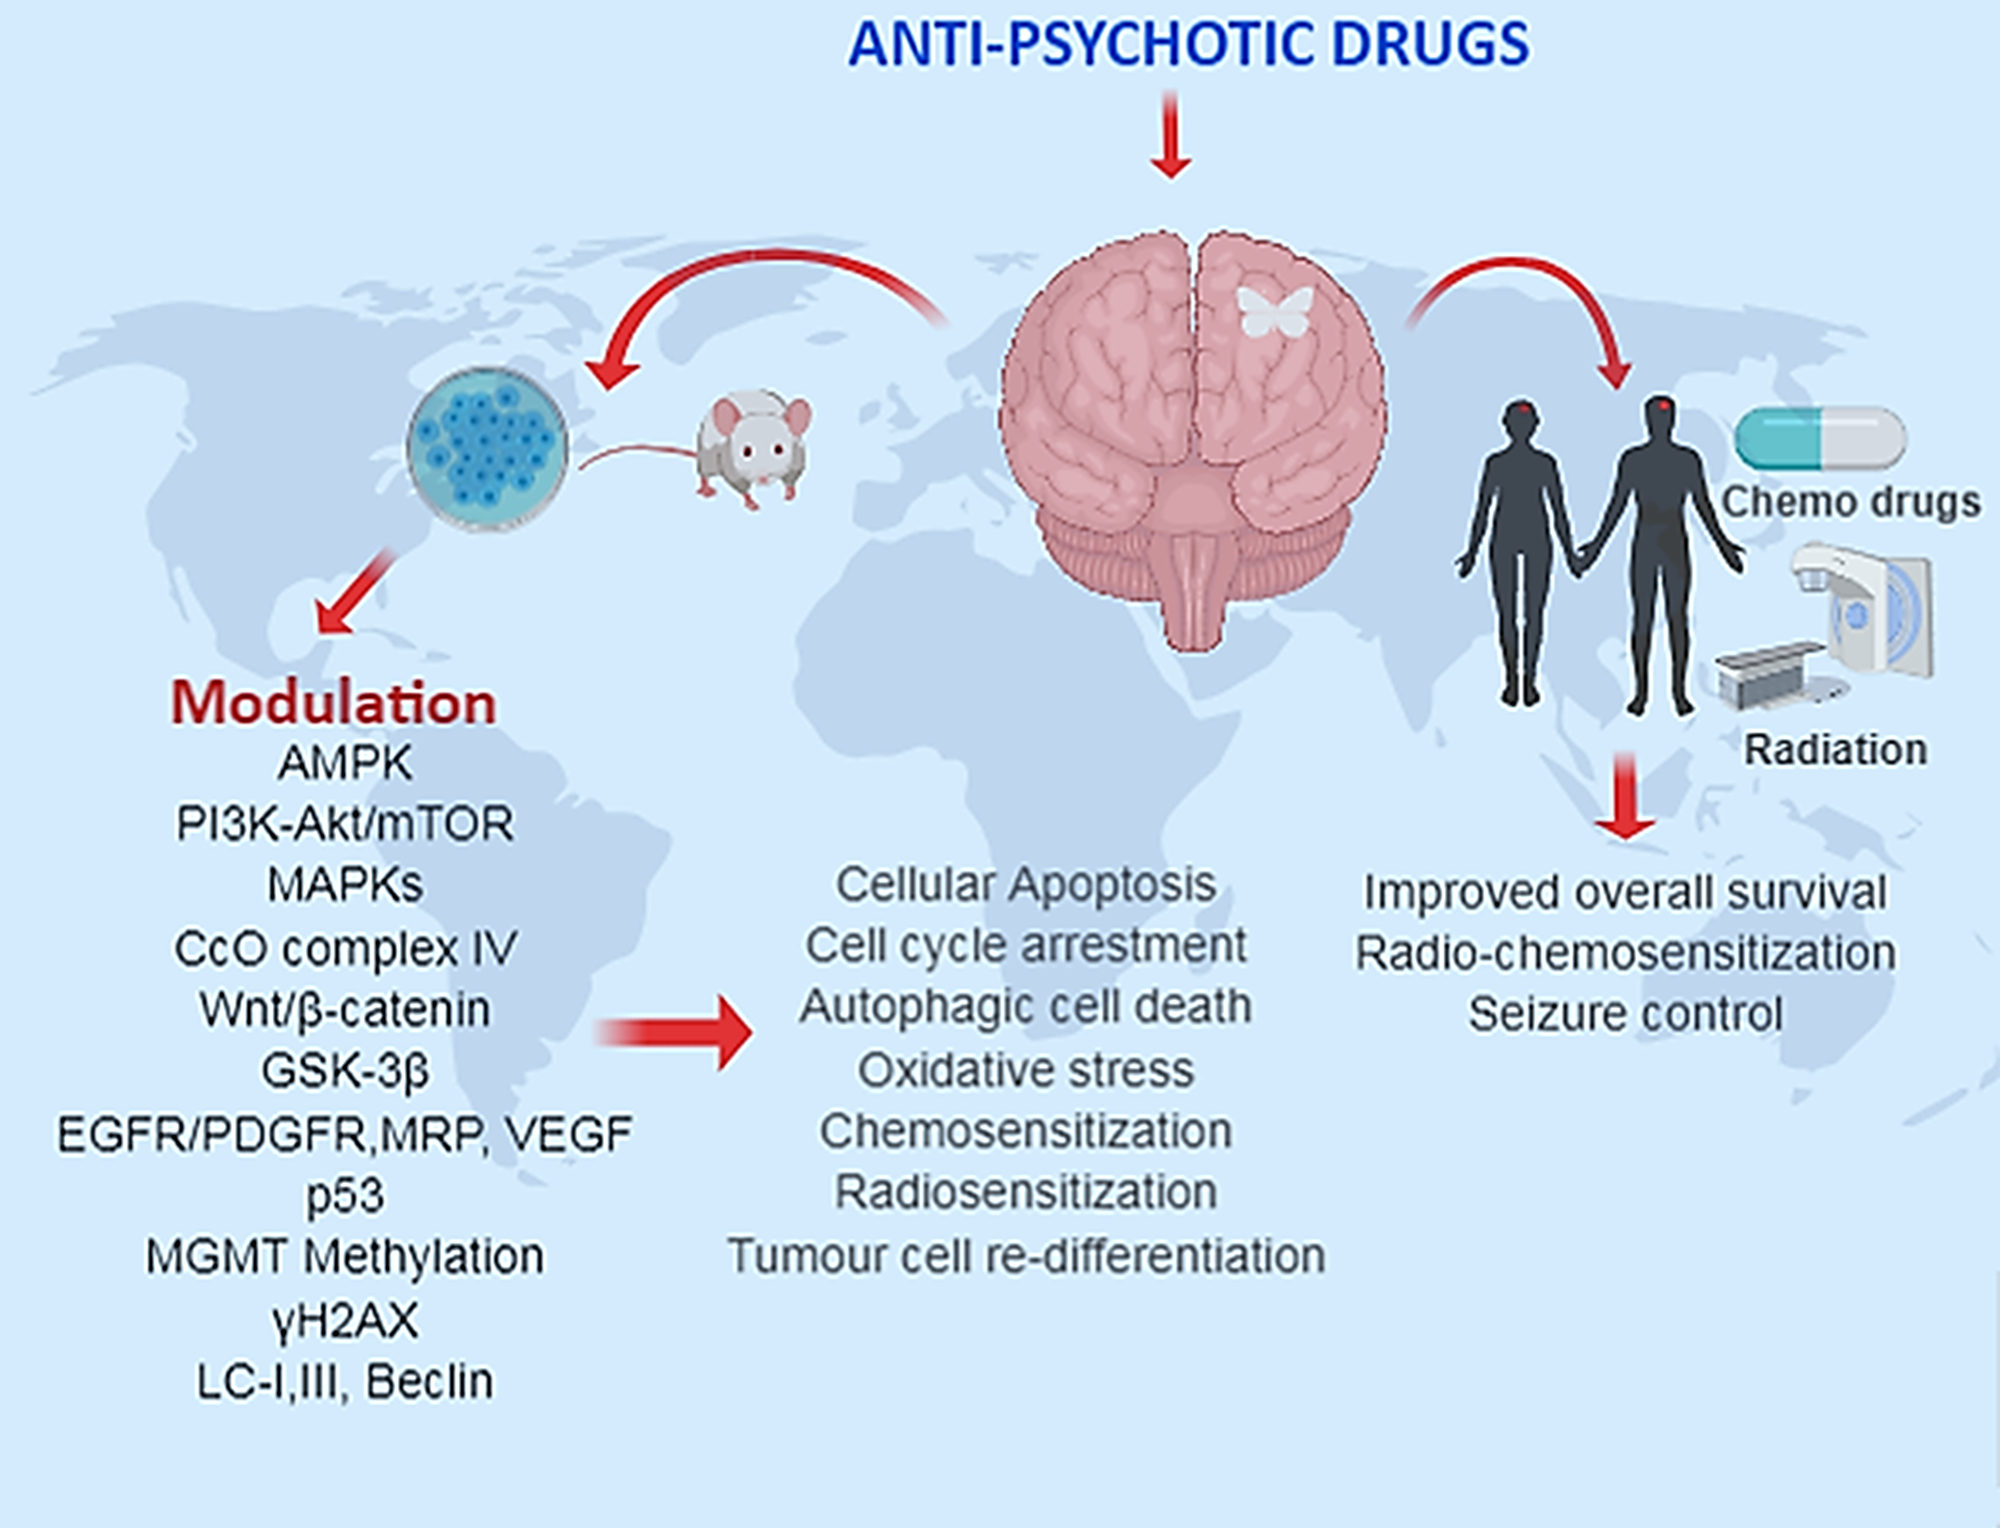 The summarized use of anti-psychotic drugs in preclinical and clinical glioma studies.